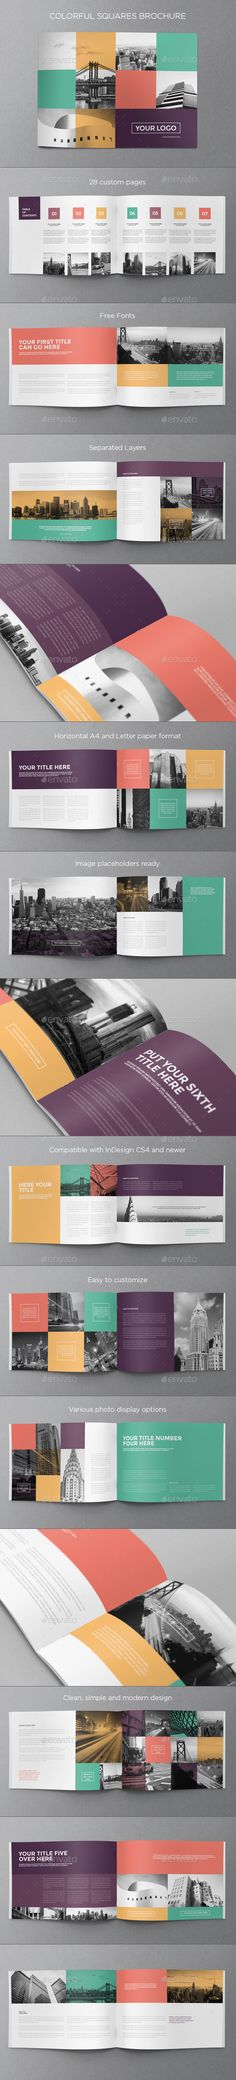 Colorful Squares Brochure - Brochures Print Templates